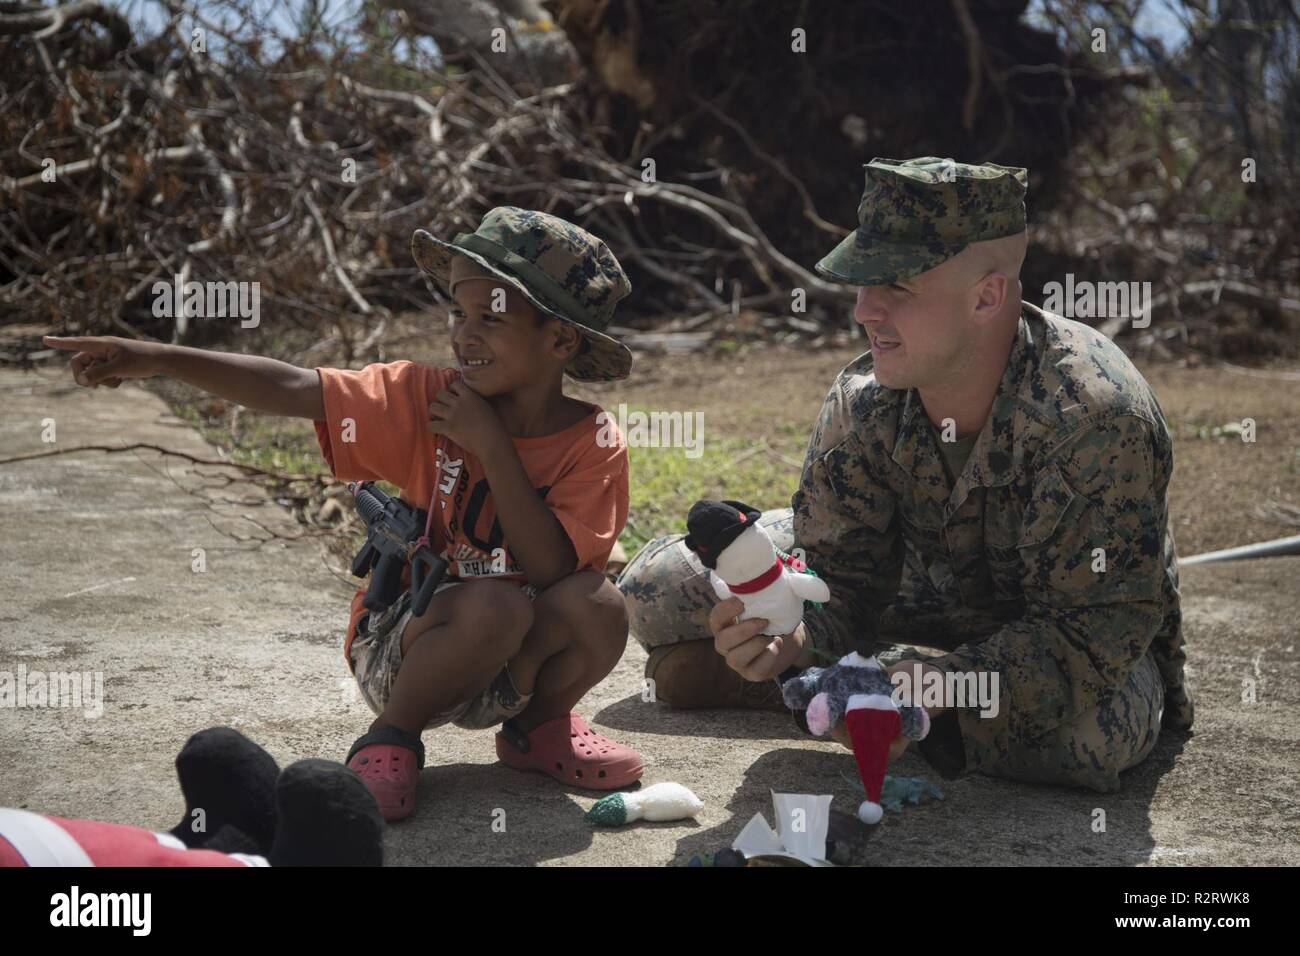 Staff Sgt. Joseph Colvin, an ammunition technician with Combat Logistics Battalion 31, speaks with a Tinian resident during U.S. Defense Support of Civil Authorities relief efforts on Tinian, Commonwealth of the Northern Mariana Islands, Nov. 6, 2018. Colvin, a native of, Croydon, Pennsylvania, graduated from Bucks County Technical High School in June 2006 before enlisting in August 2007. Businesses, government buildings, homes and schools were heavily damaged by Super Typhoon Yutu, which made a direct hit with devastating effect on Tinian Oct. 25 as the second strongest storm to ever hit U.S. - Stock Image